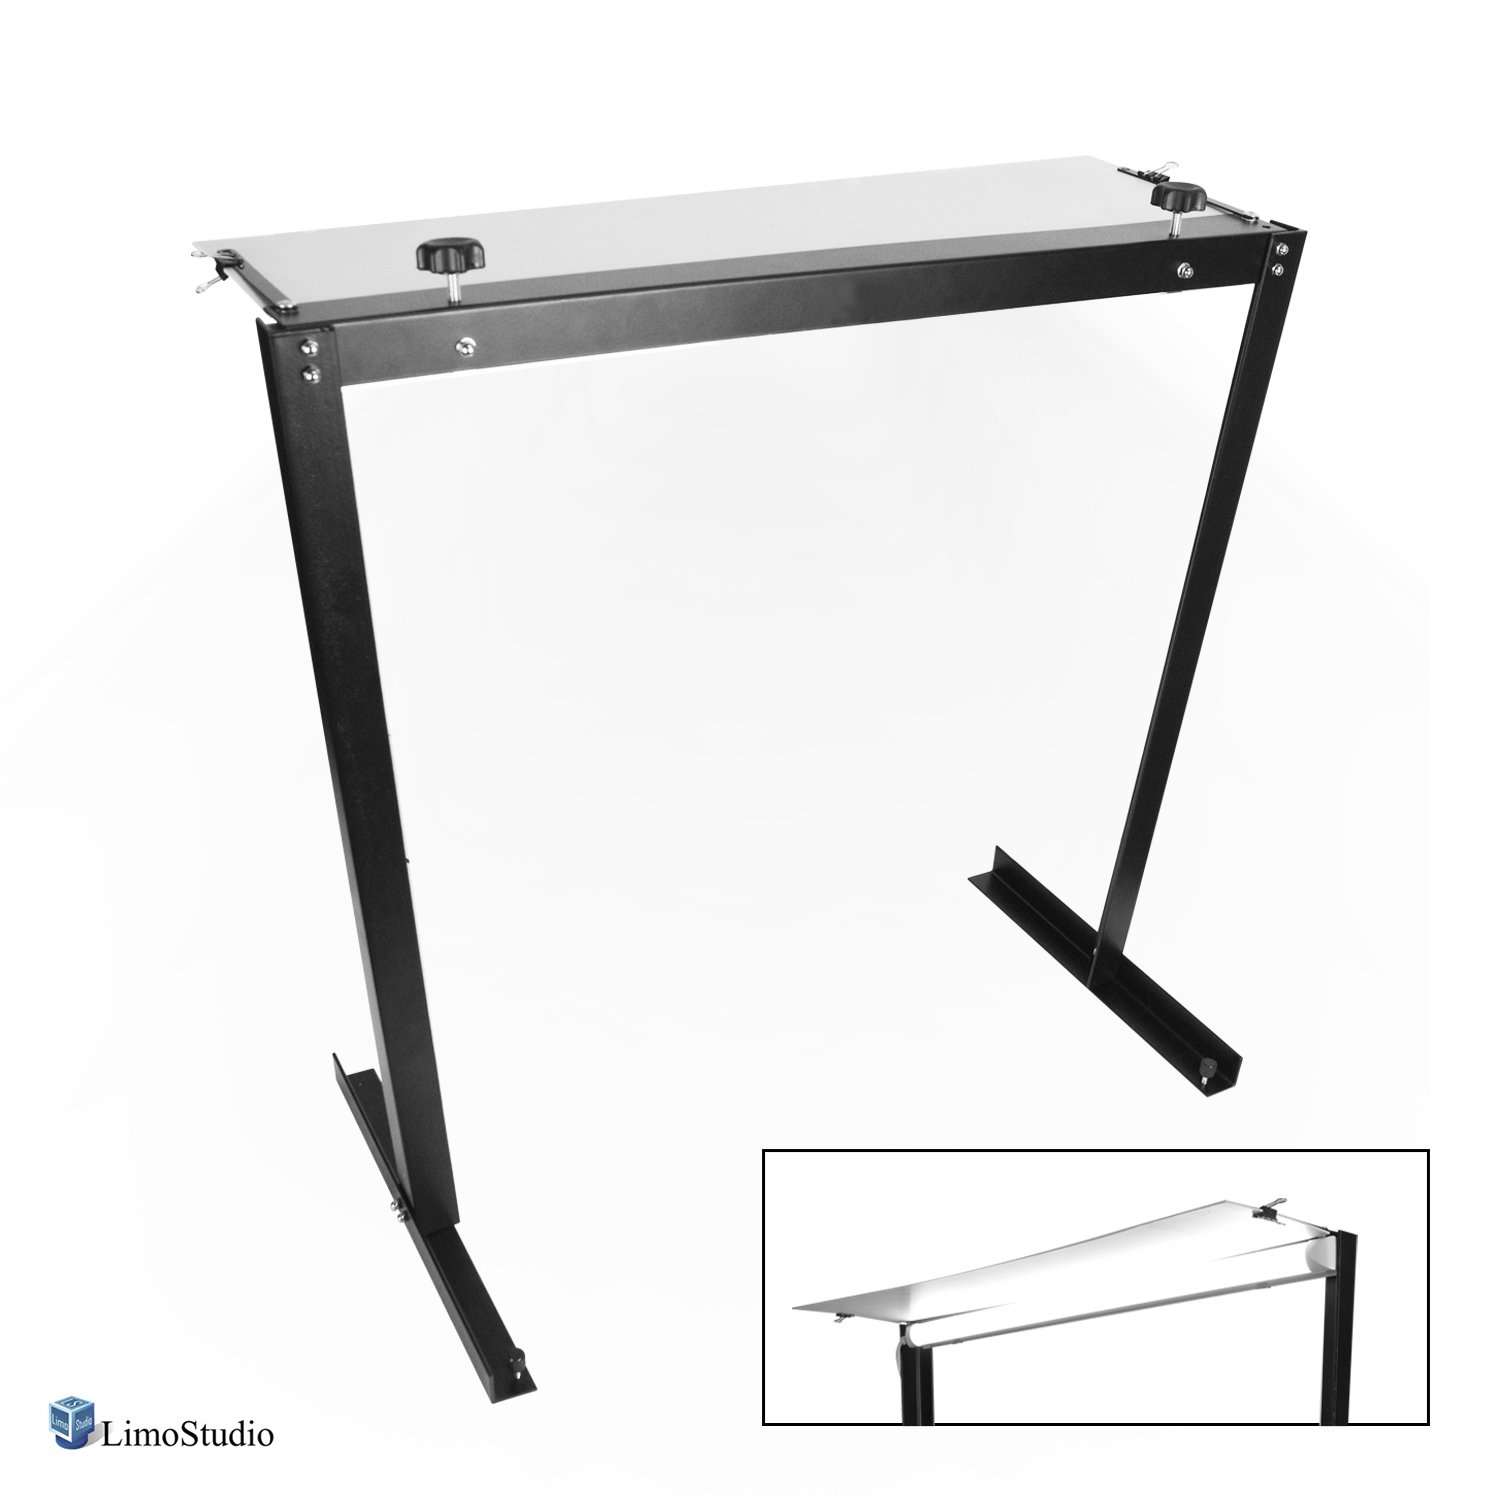 LimoStudio Photography Shooting Table Kit with Energy Saving LED Light for Commercial Product Photo Shoots, AGG2595 by LimoStudio